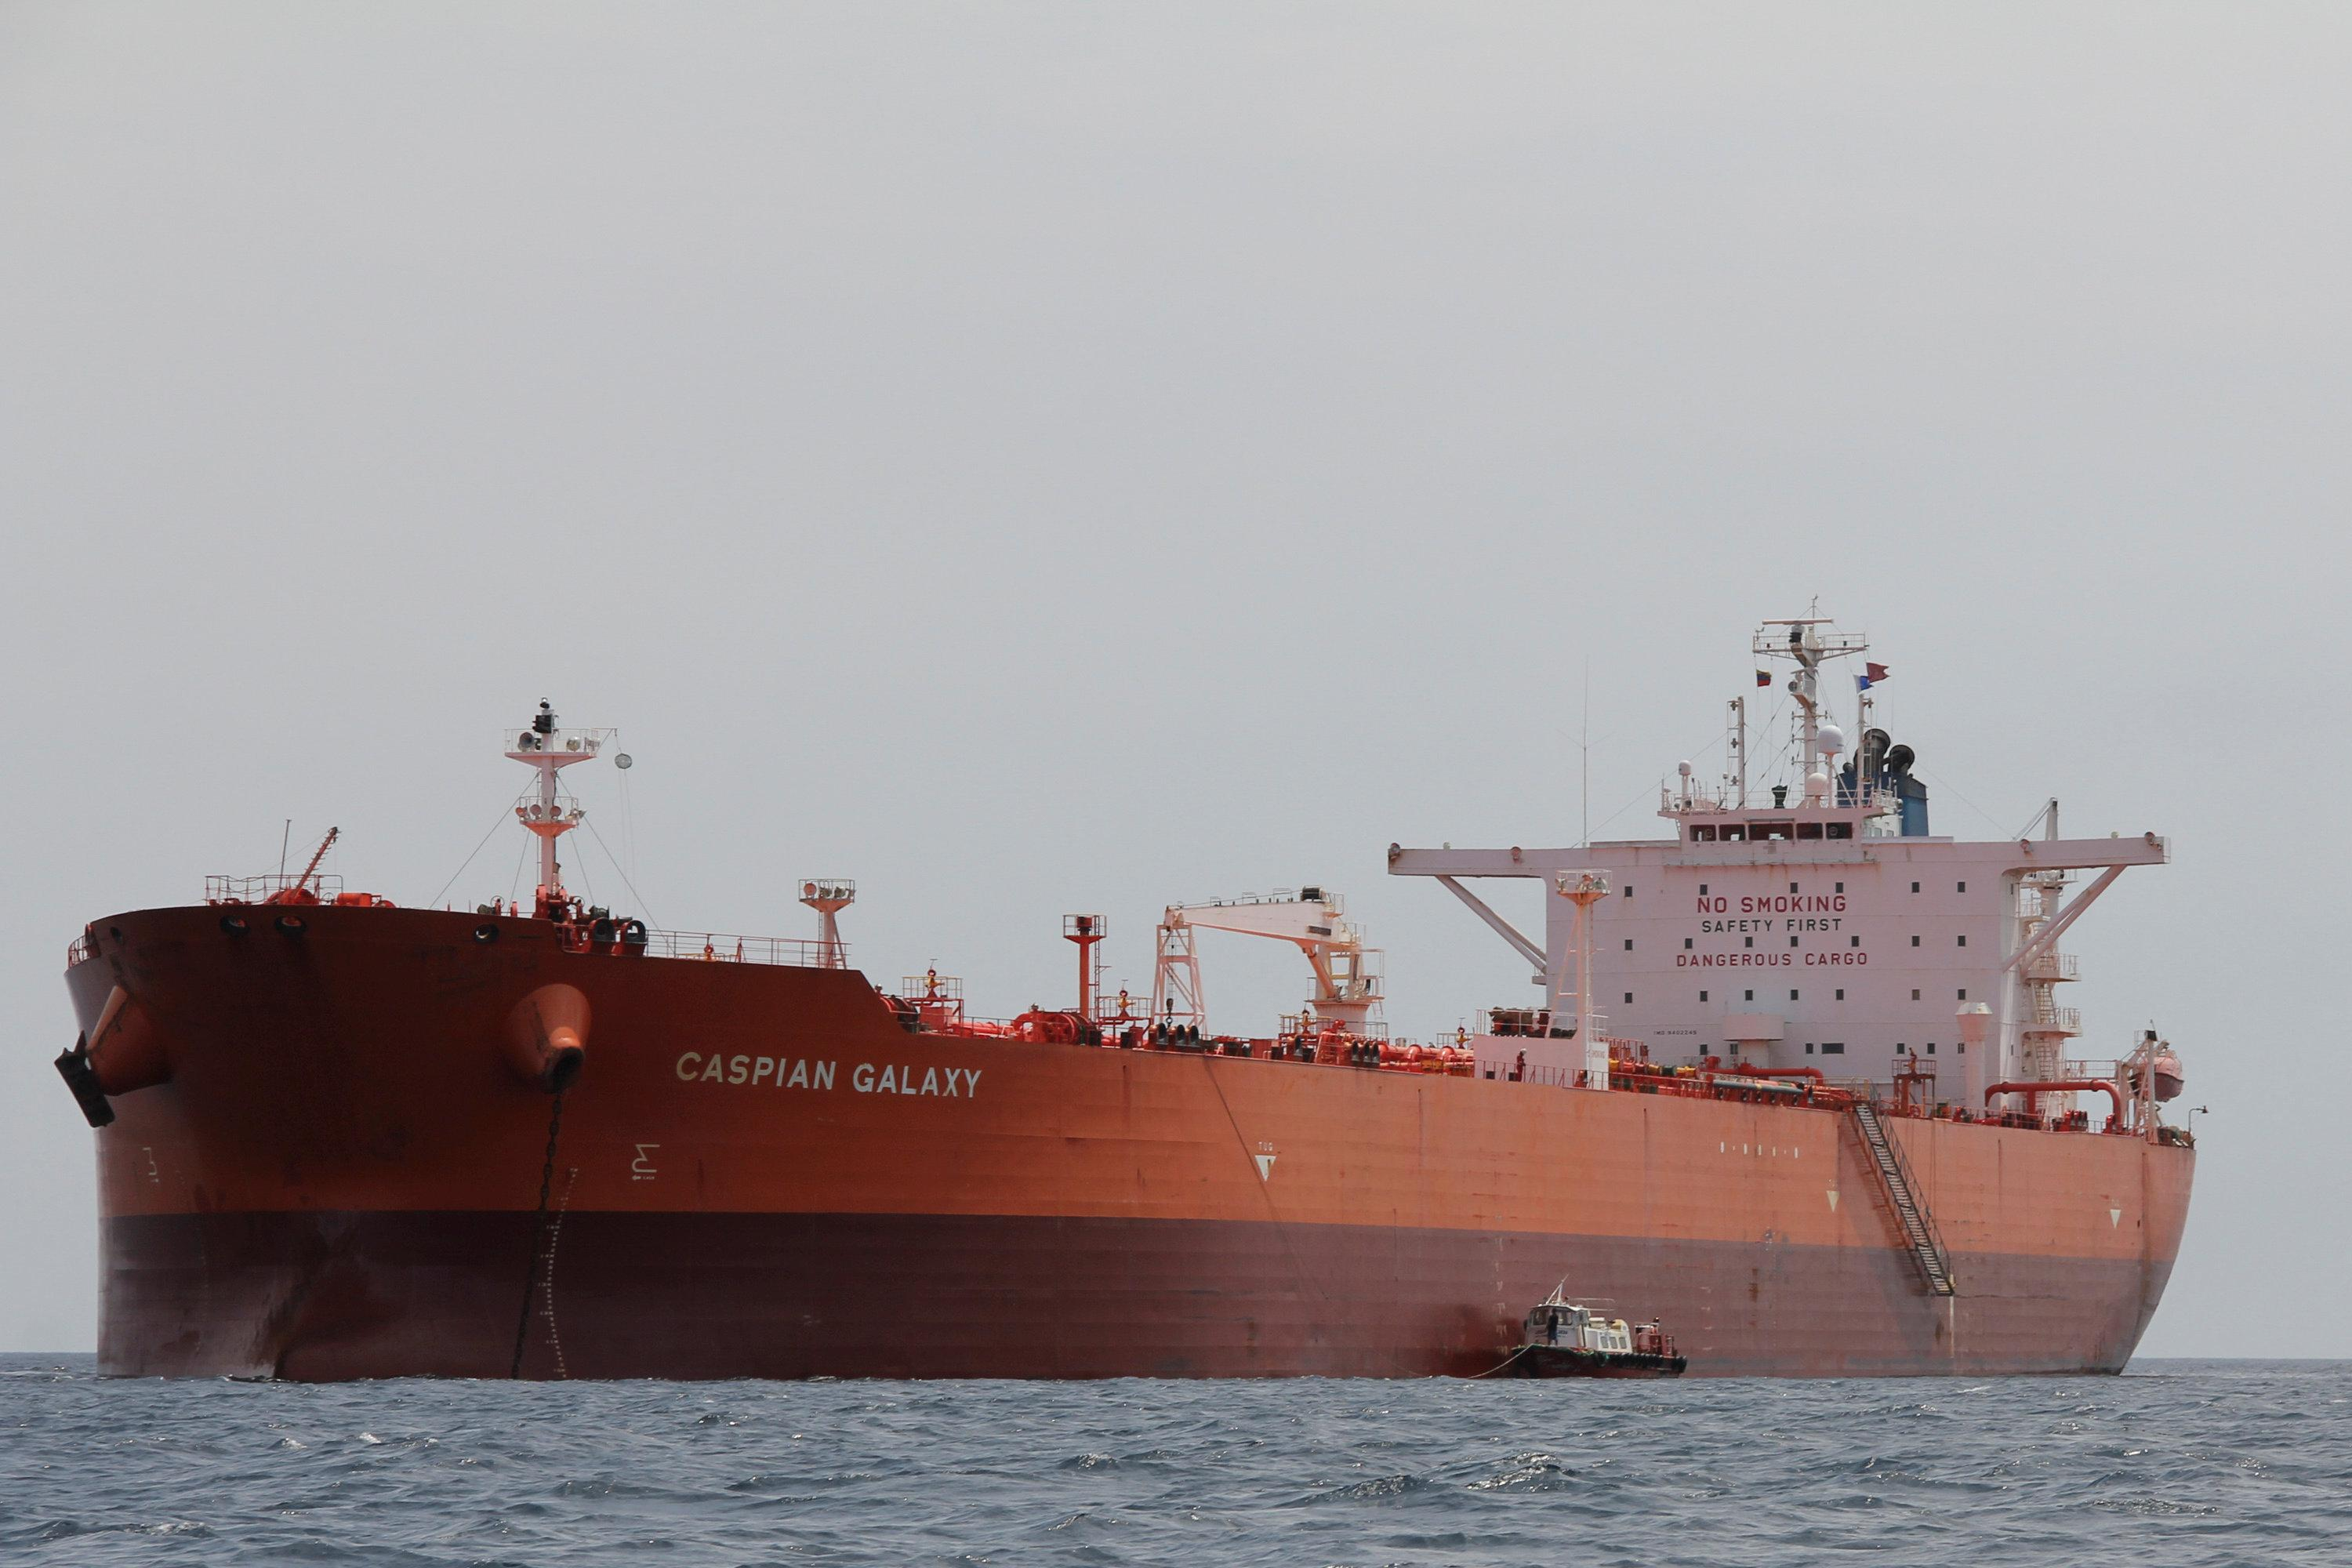 Banned at sea: Venezuela's crude-stained oil tankers - Reuters